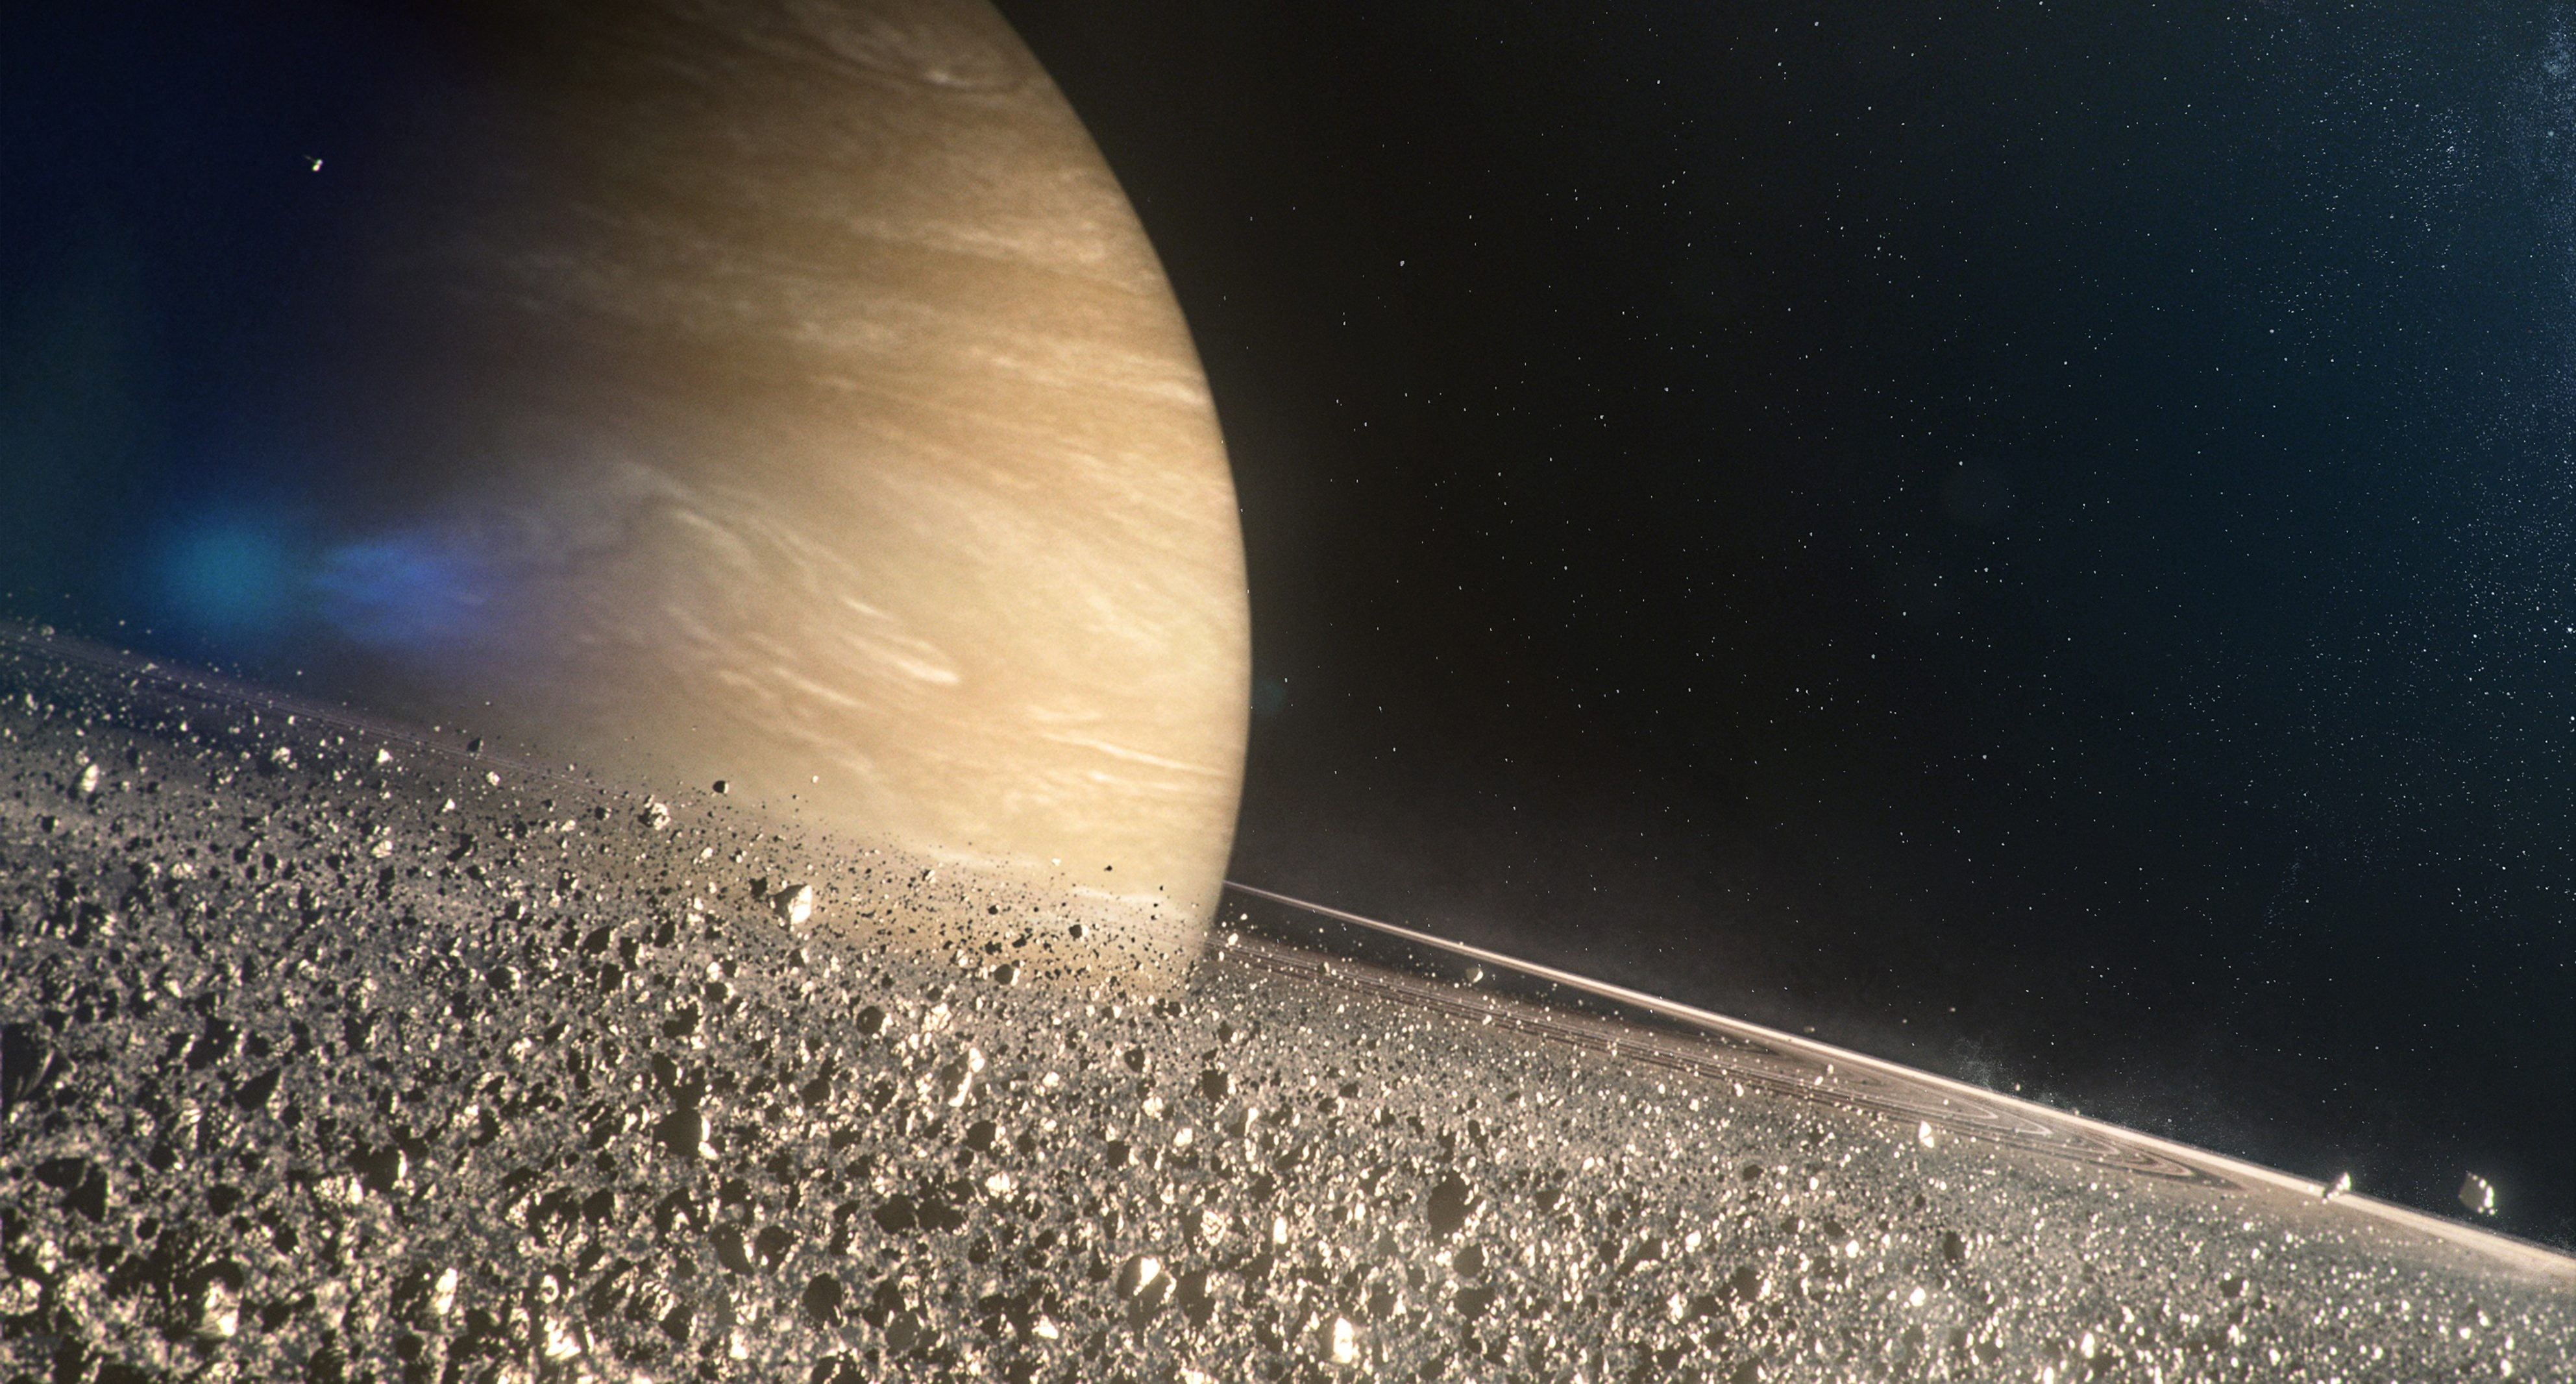 Picture Shows: Saturn's rings are made up of countless particles. Whislt the majority are tiny, almost microscopic, some are the size of sky scrapers. CG close-up of Saturn's rings.